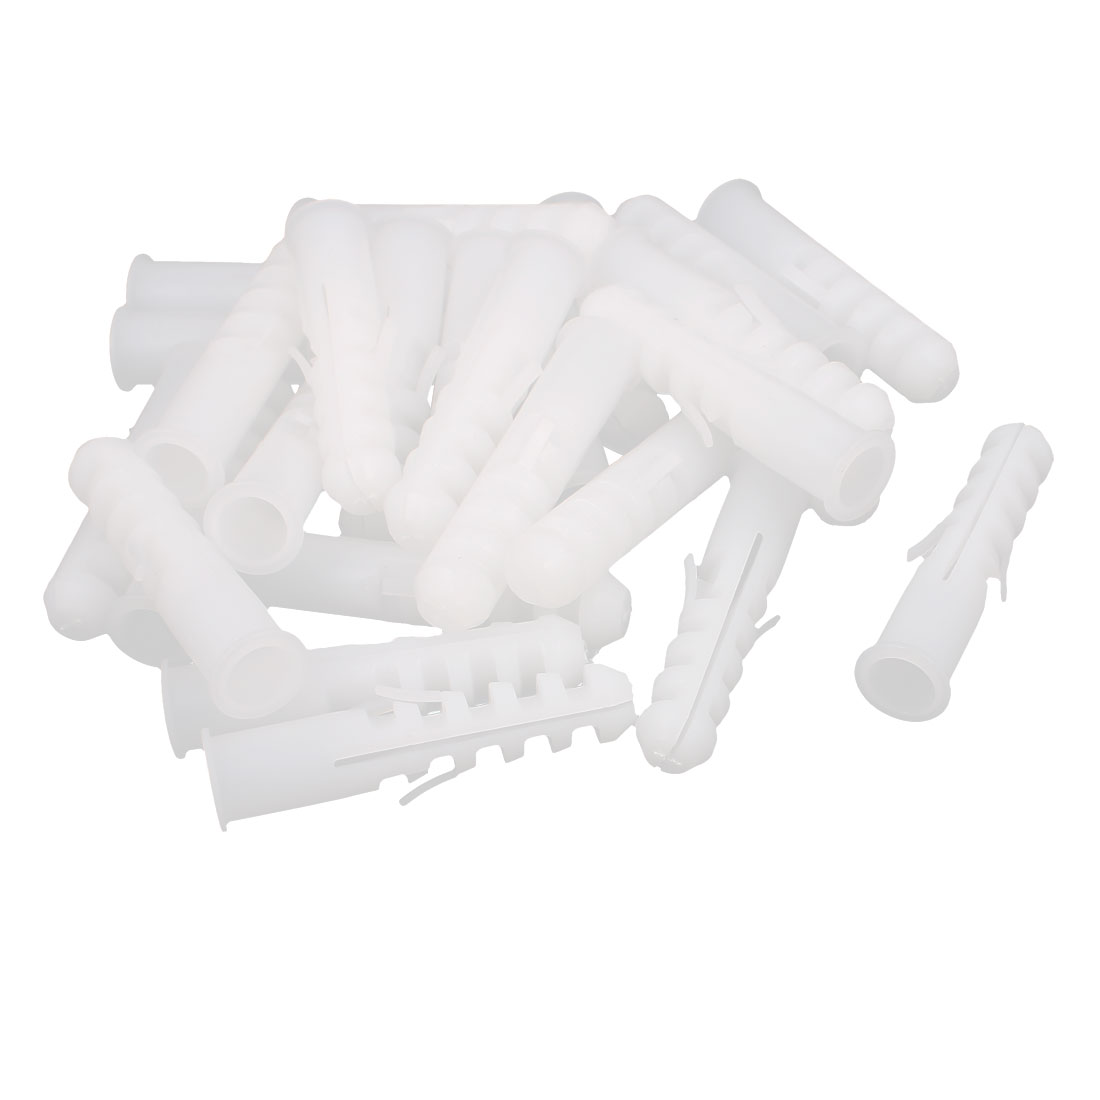 Cabinet Plastic Lag Screws Anchor Expansion Nails White 9mm Dia 26 Pcs